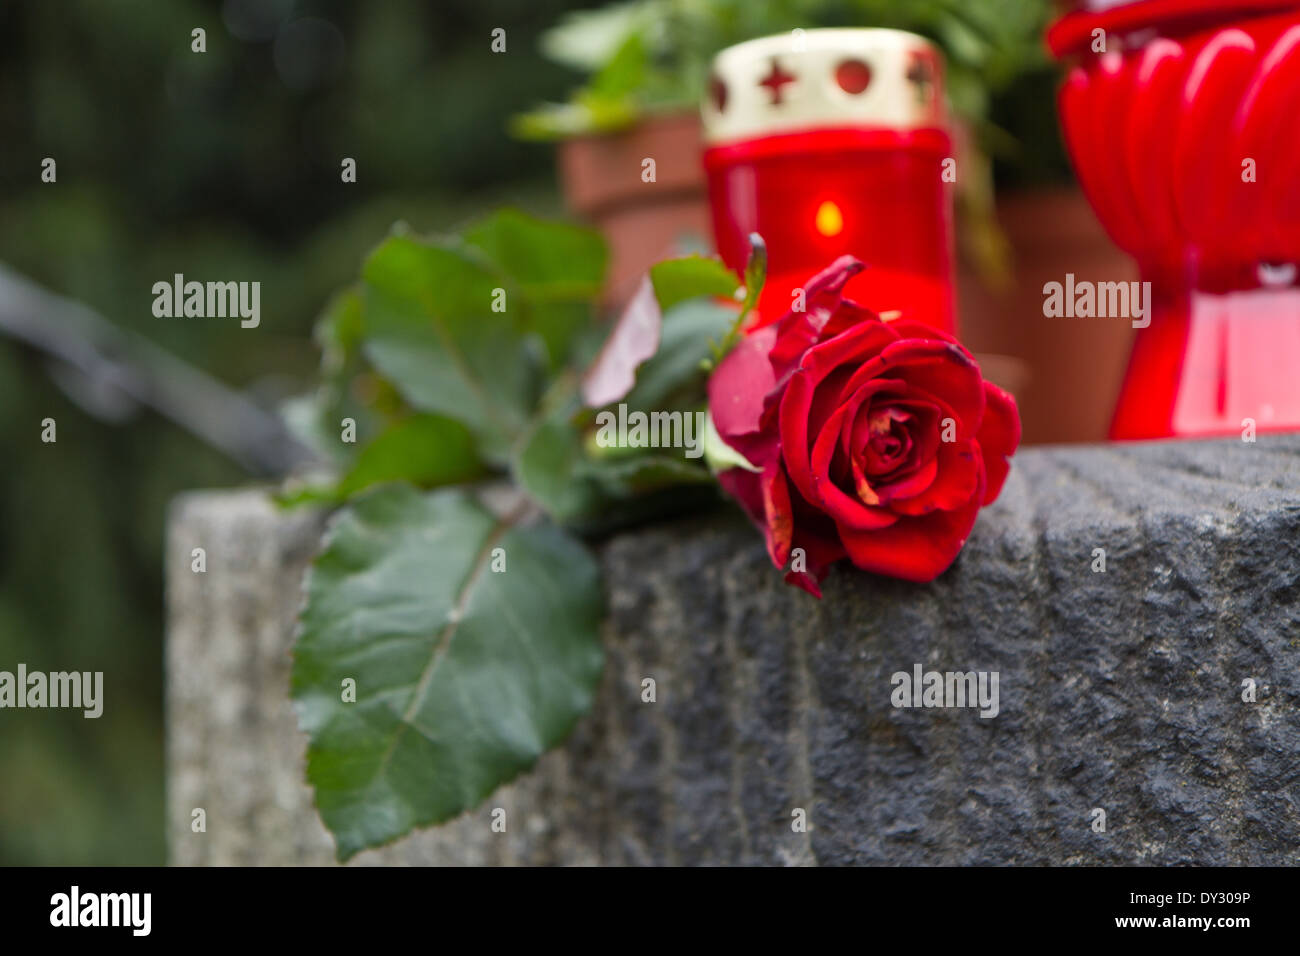 Details at cemetery in Plzeň, Czech republic - Stock Image